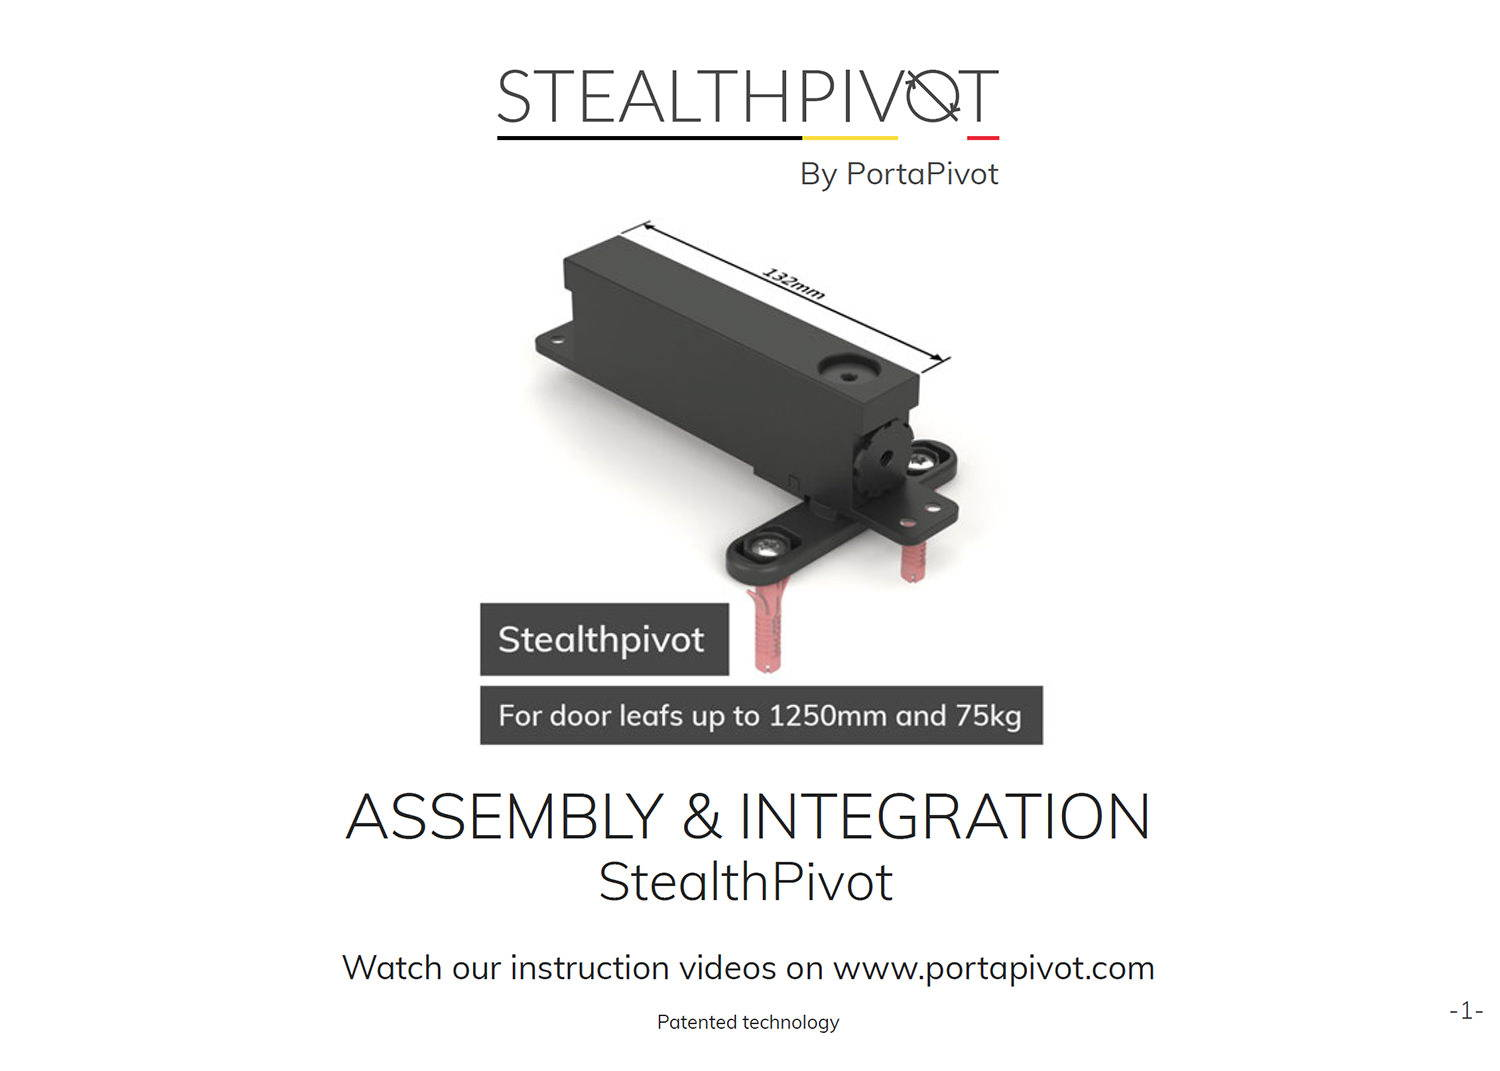 Stealth Pivot assembly and installation manual